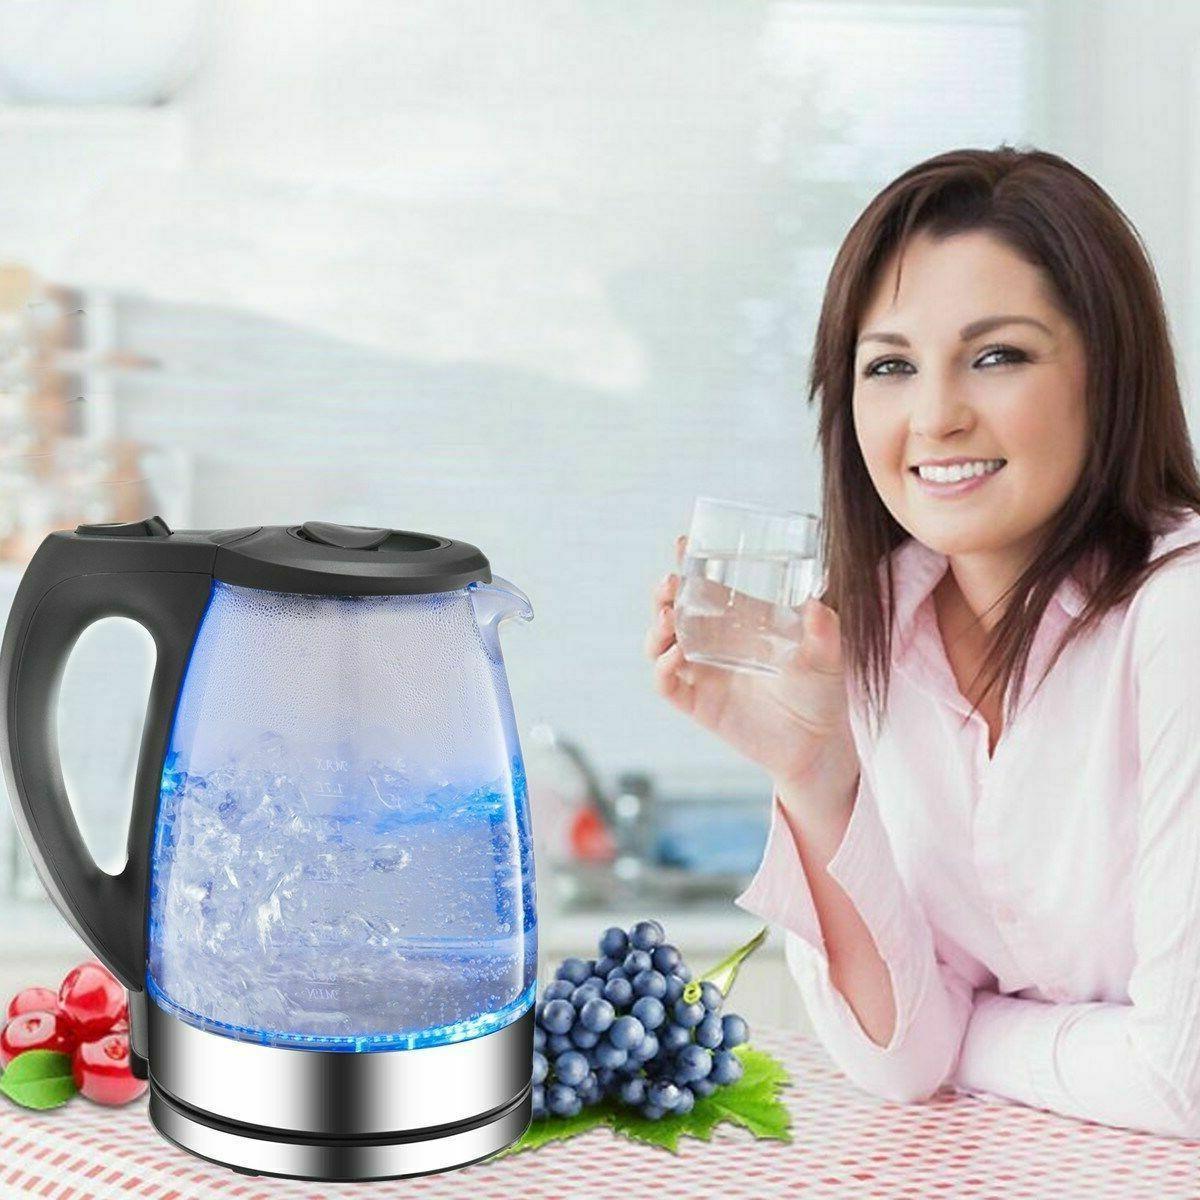 Electric Kettle Cordless Rapid Boil Blue Jug Water